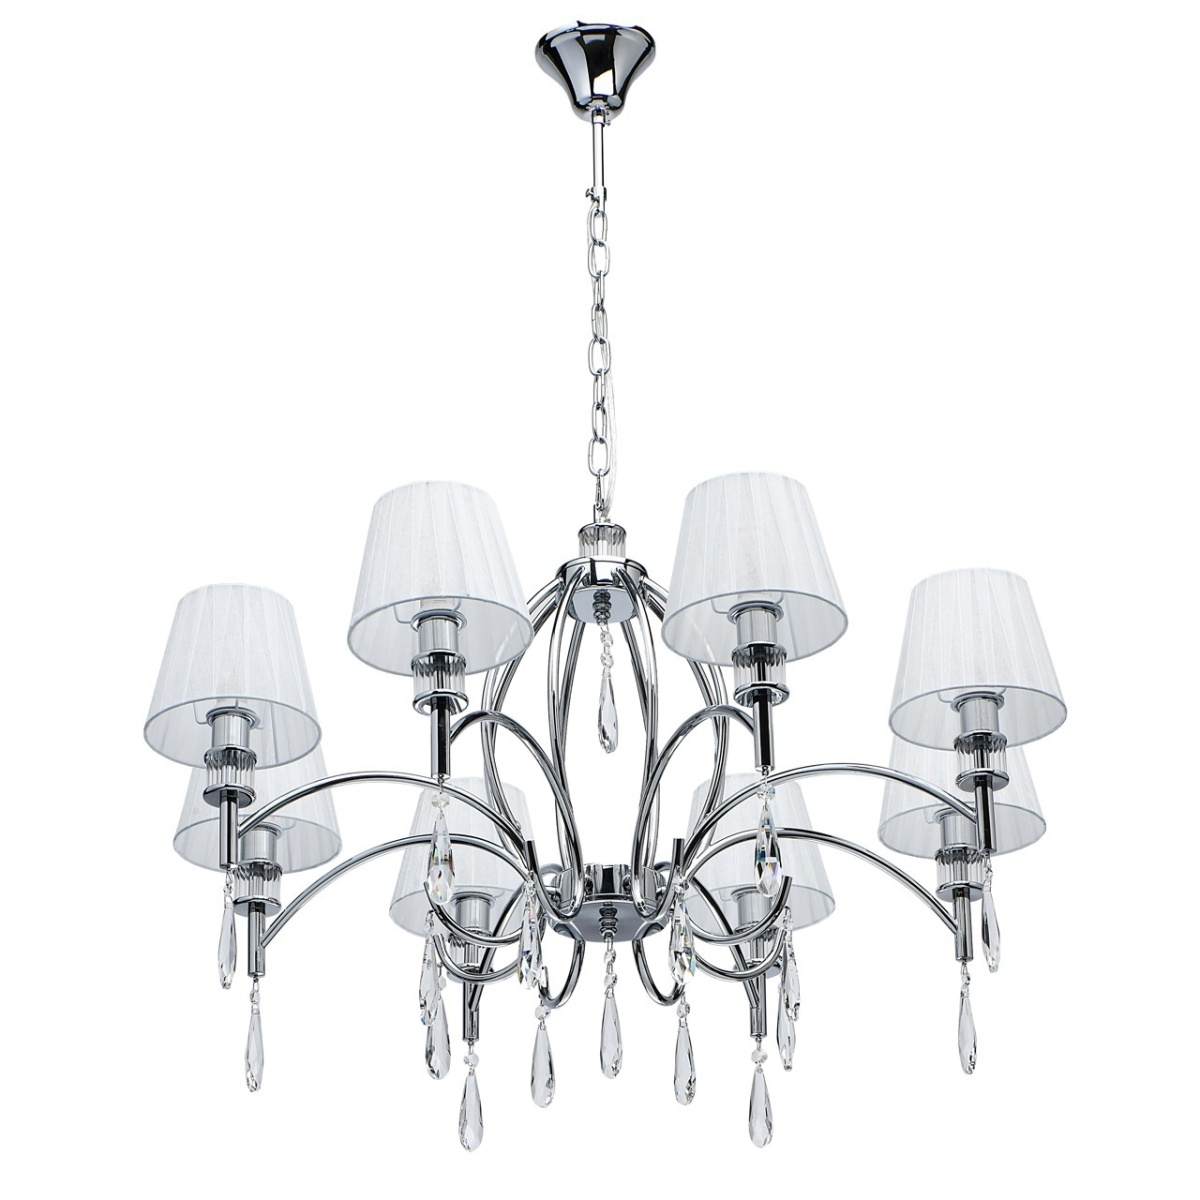 Candelabru Light Vega Elegance Imagine